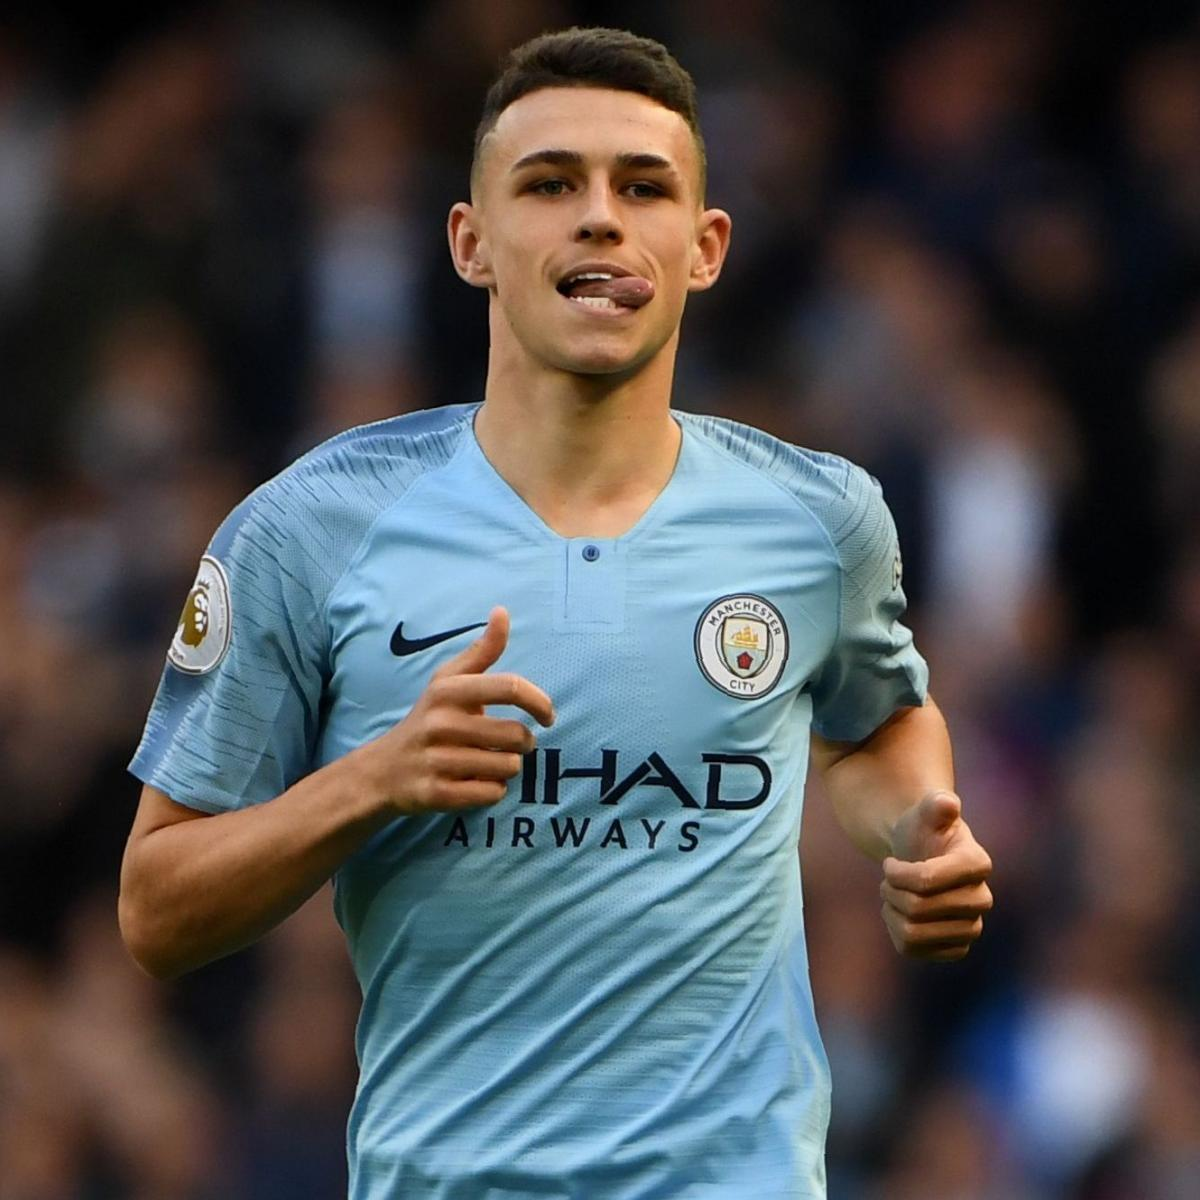 Manchester City Transfer News: Phil Foden Reportedly Made to Wait for New Deal